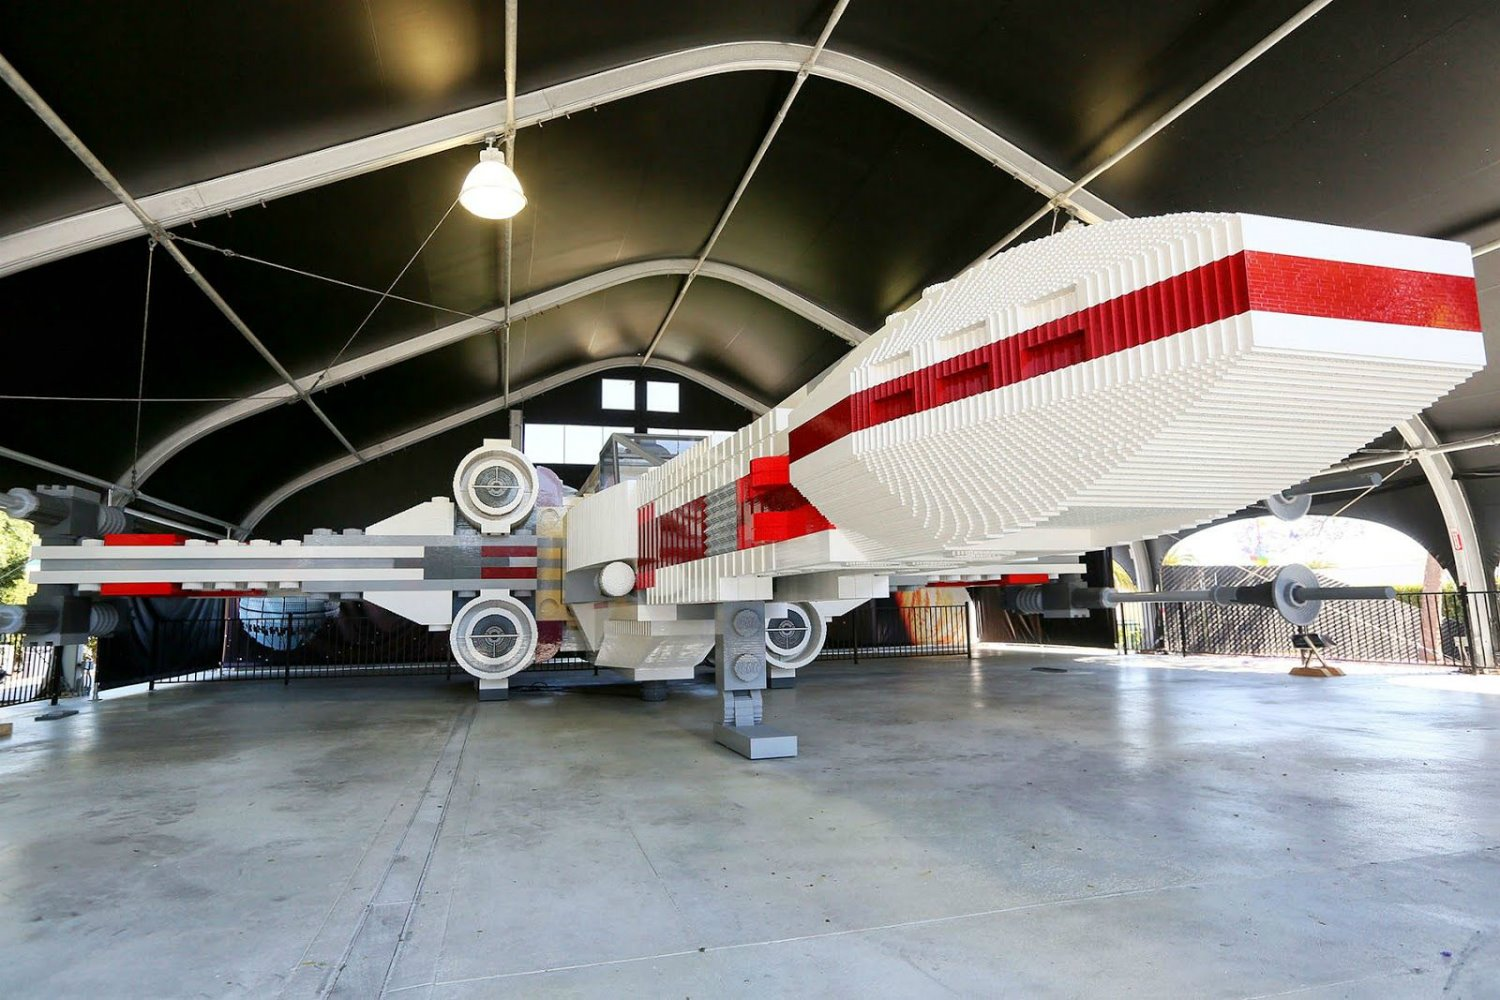 Lego X wing starfighter